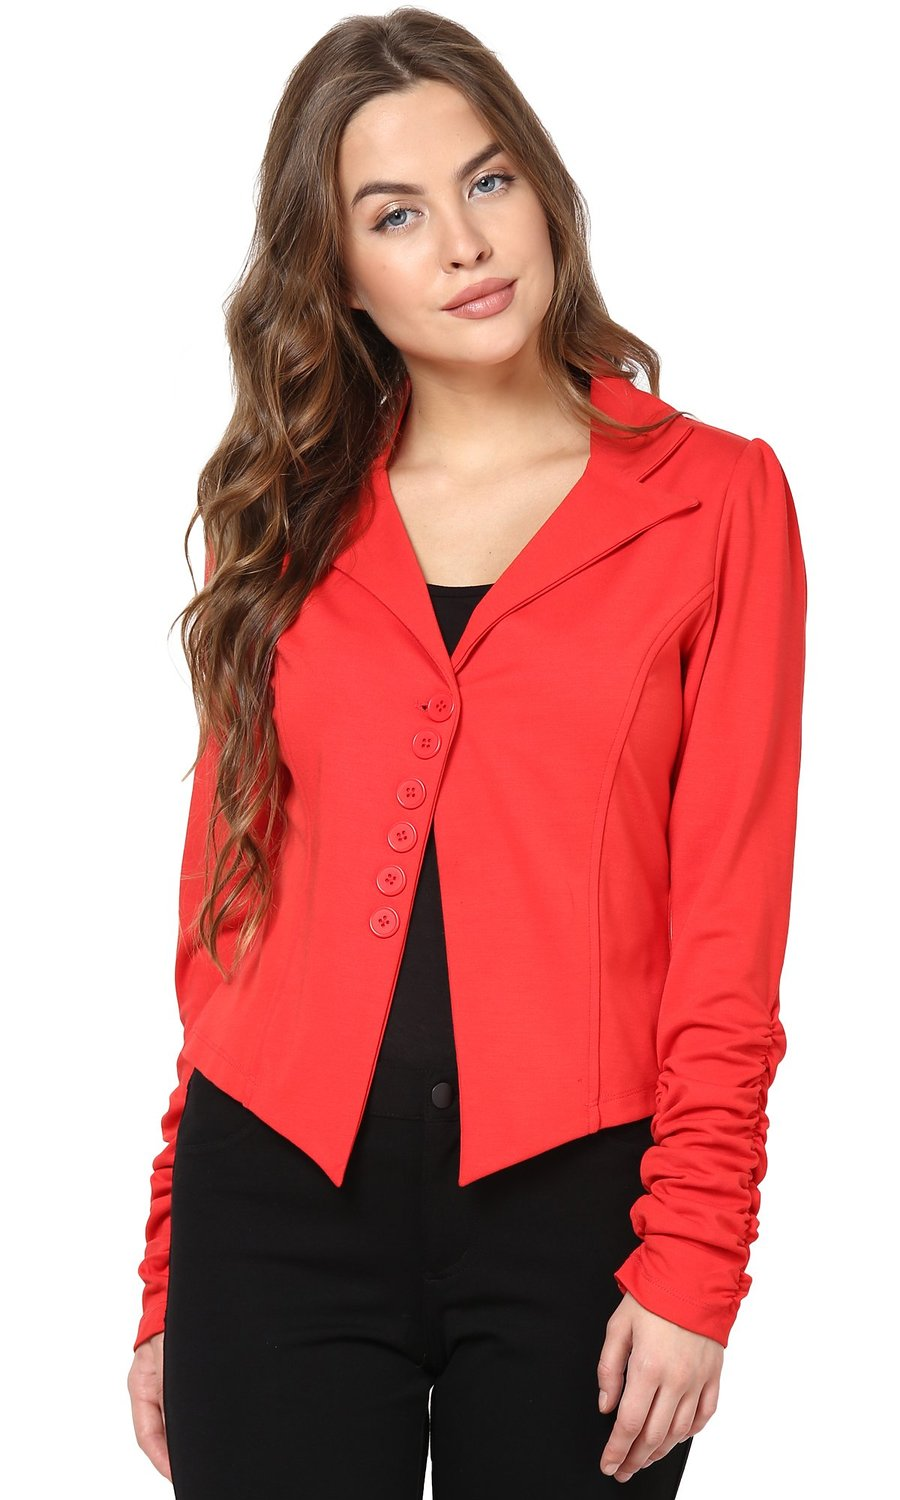 The Gud Look Women's Clothing Clothing at Flat 65% Off on Amazon